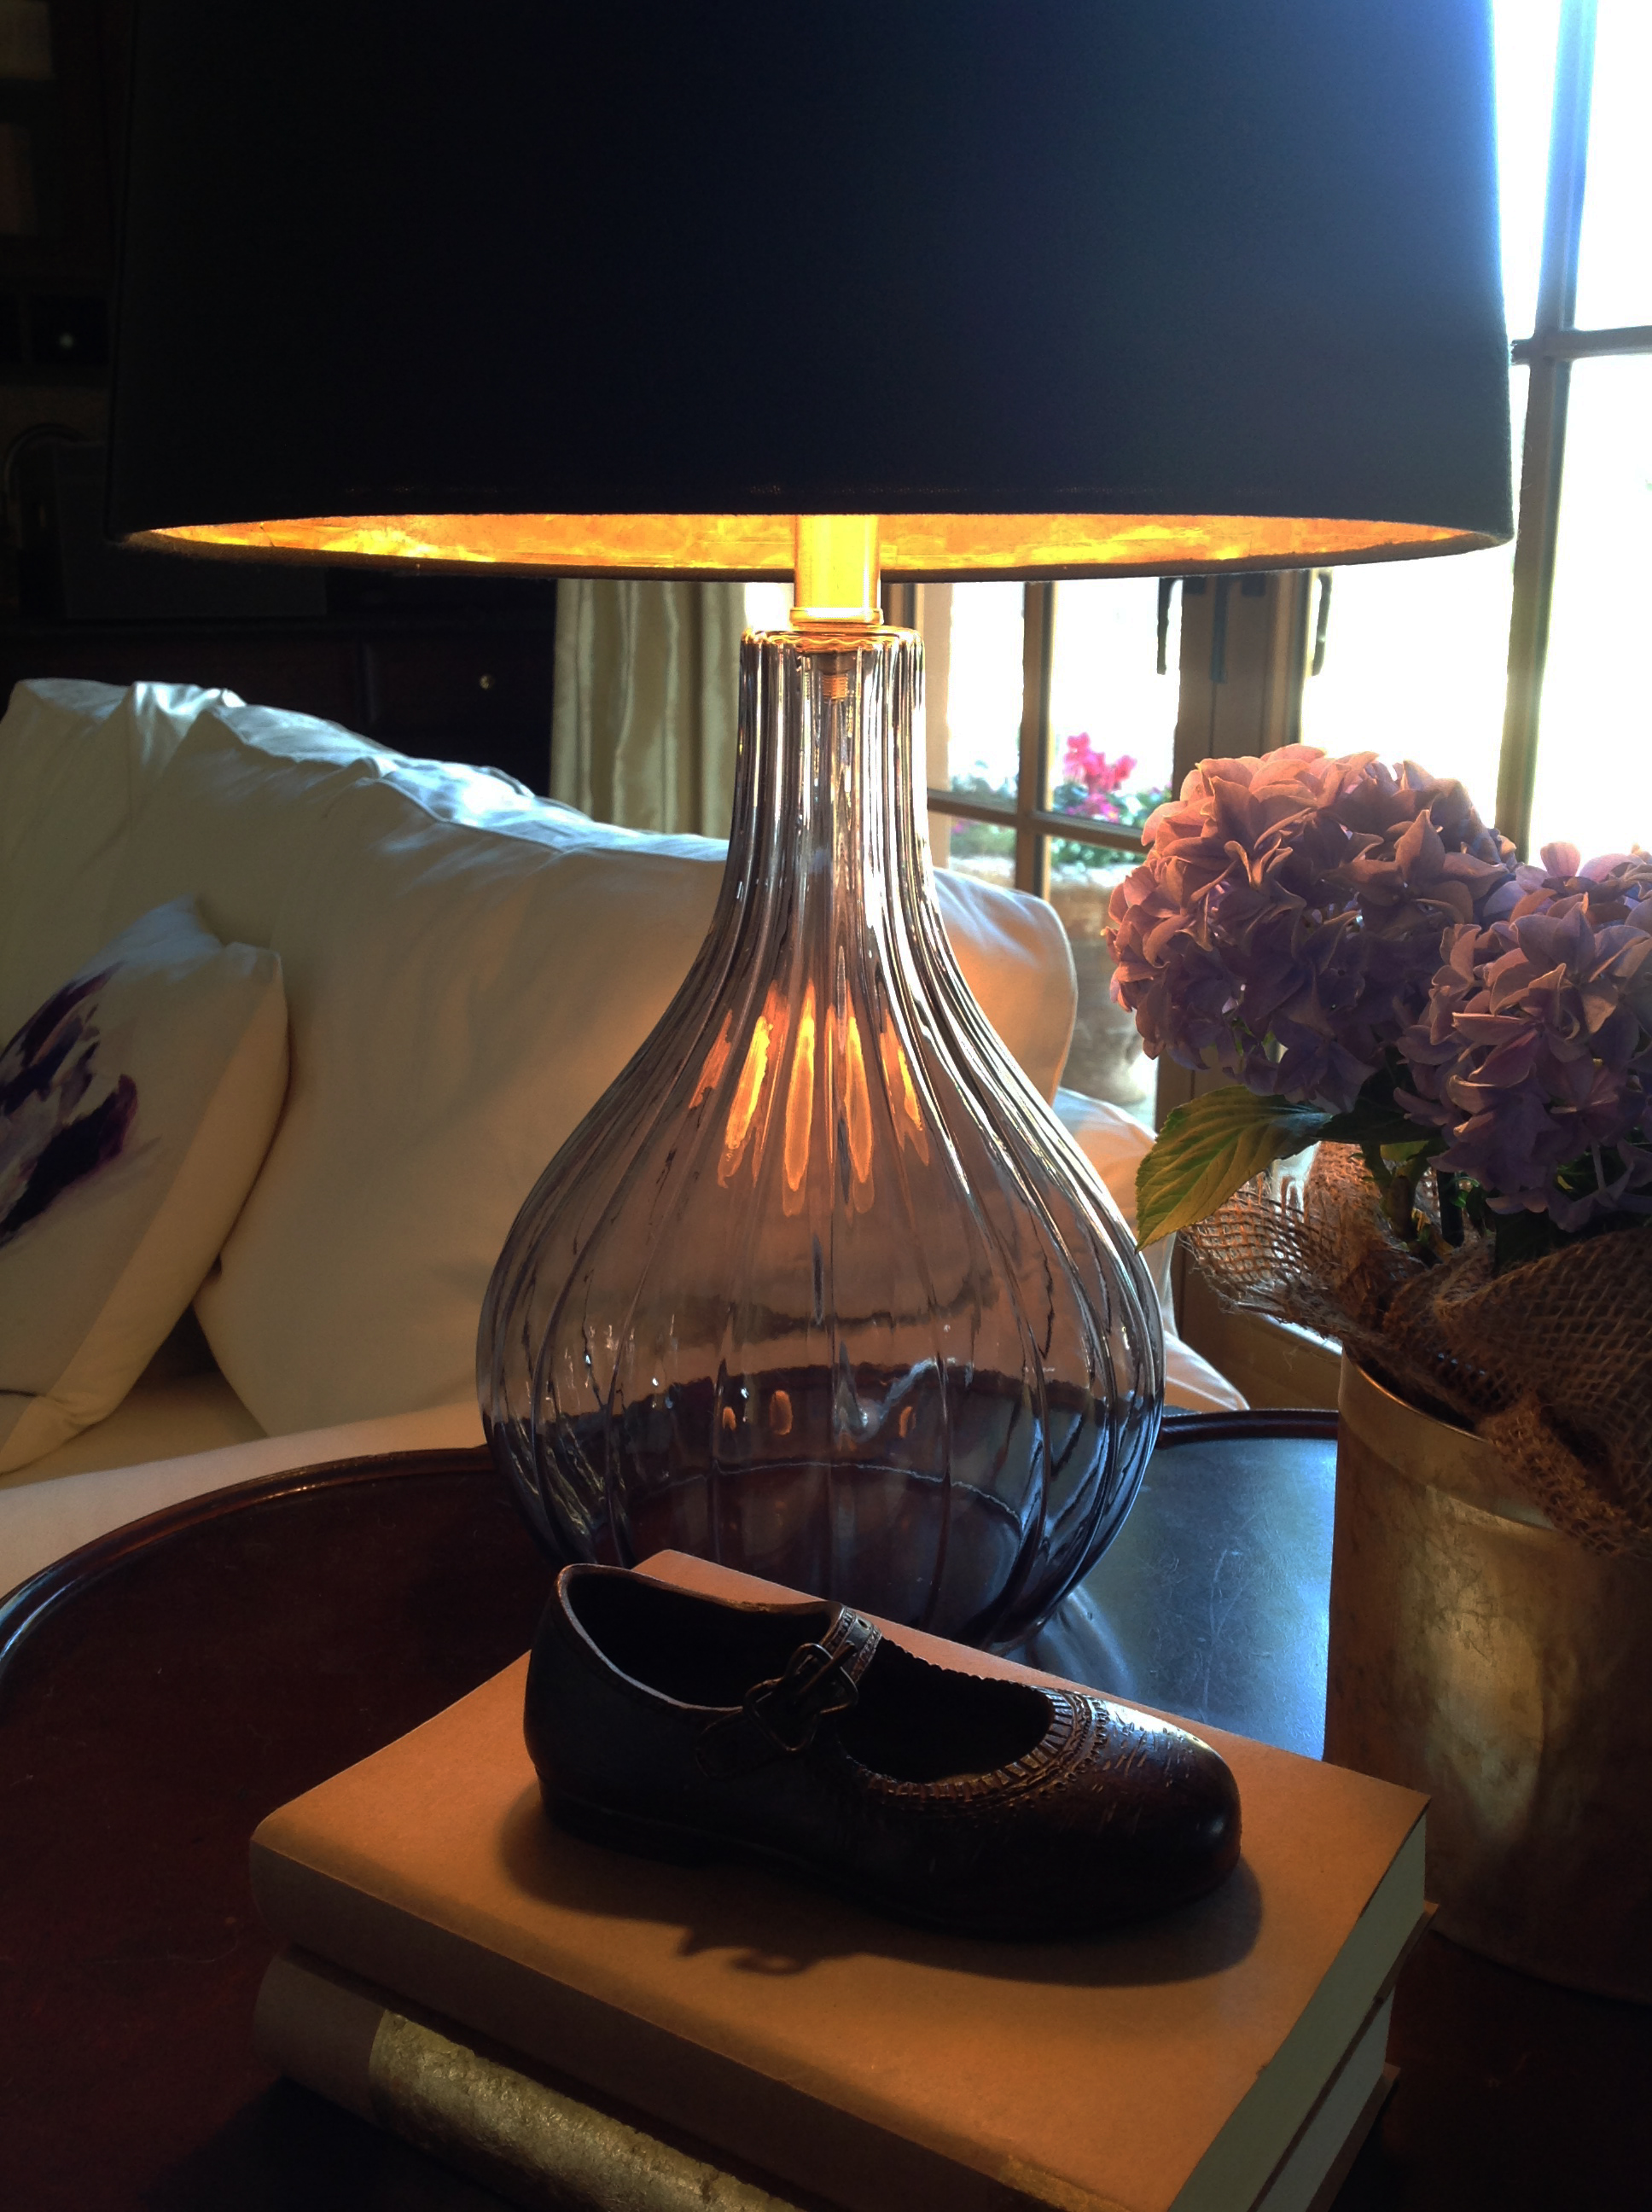 Lamp Shade With Gold Lining | Once Again, My Dear Irene